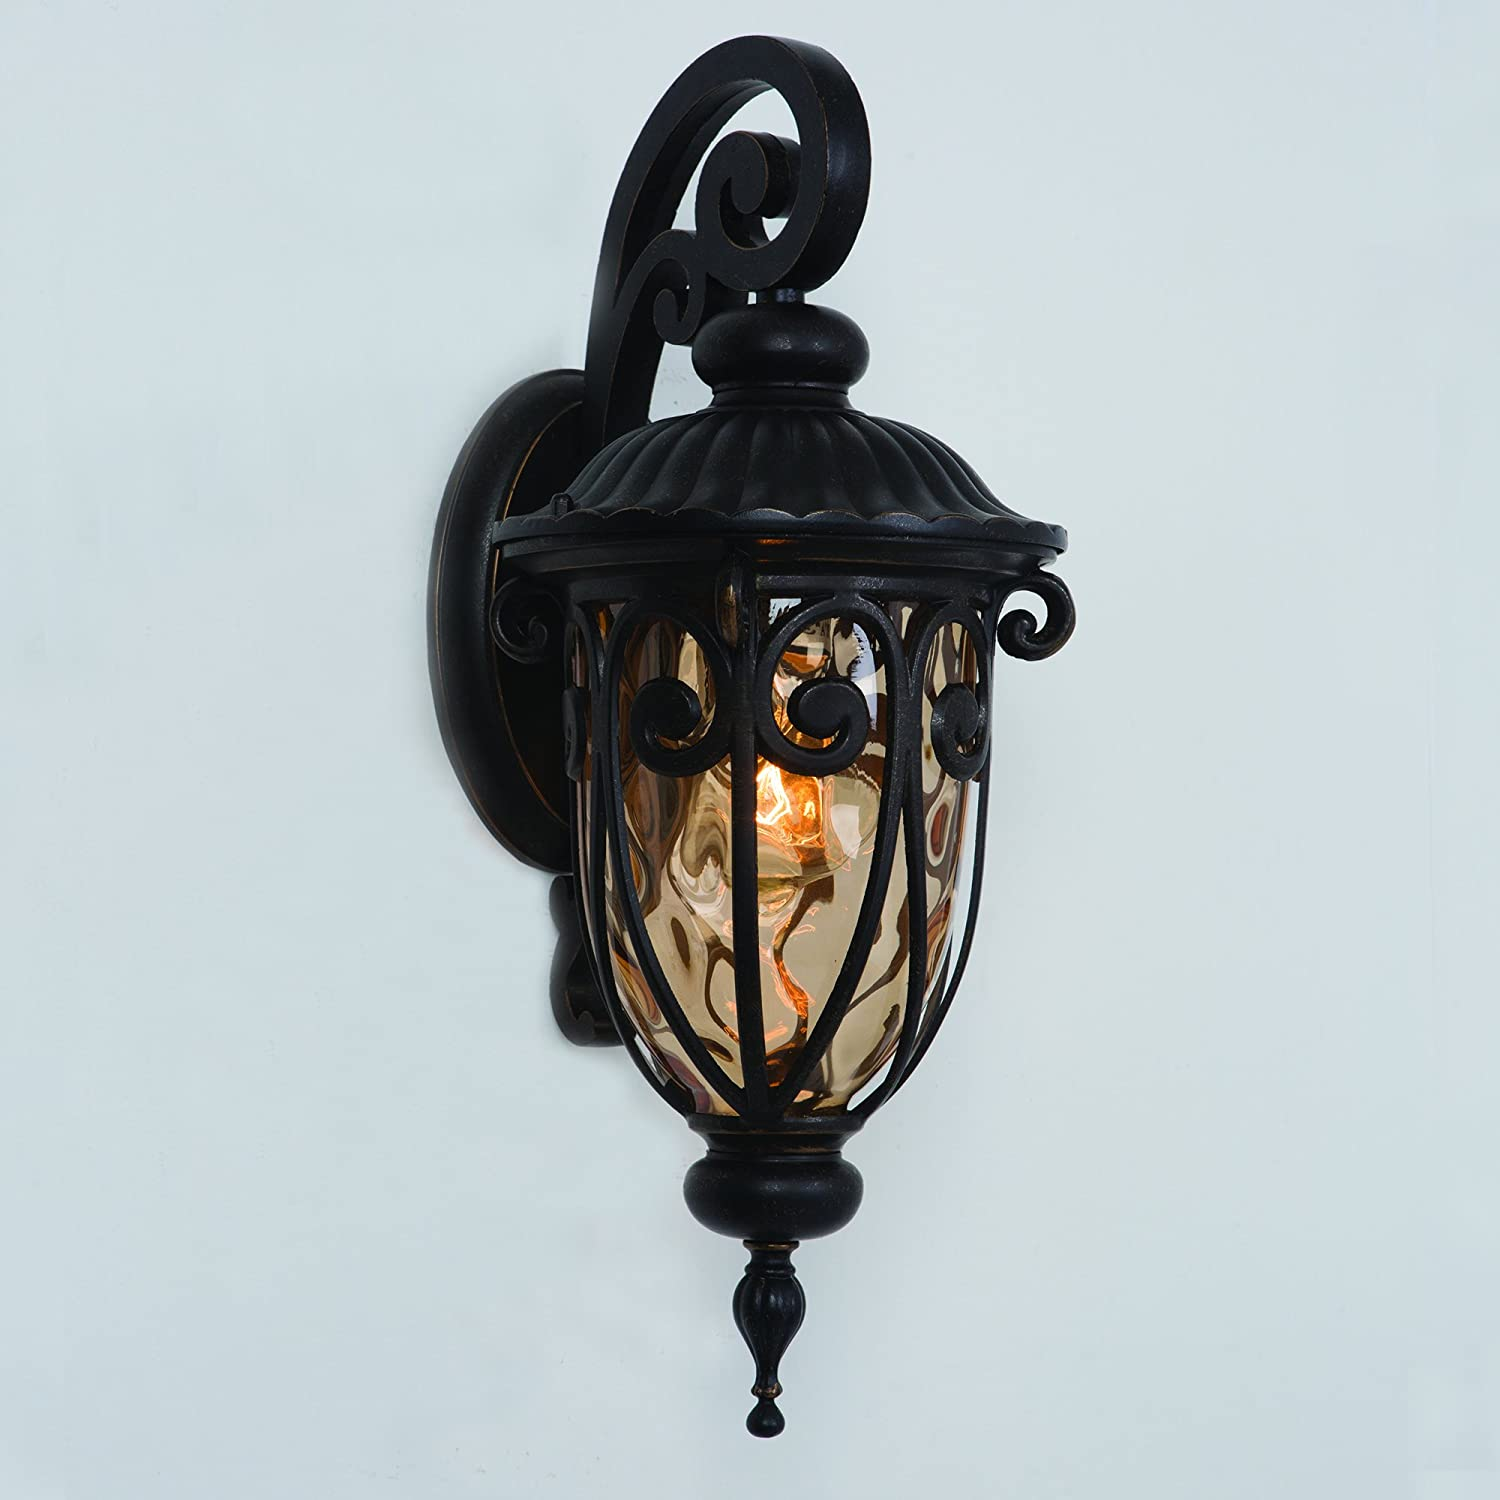 Yosemite Home Decor 519SDIORB Viviana 1 Light Wall Sconce With Gold Stone  Glass   Wall Porch Lights   Amazon.com